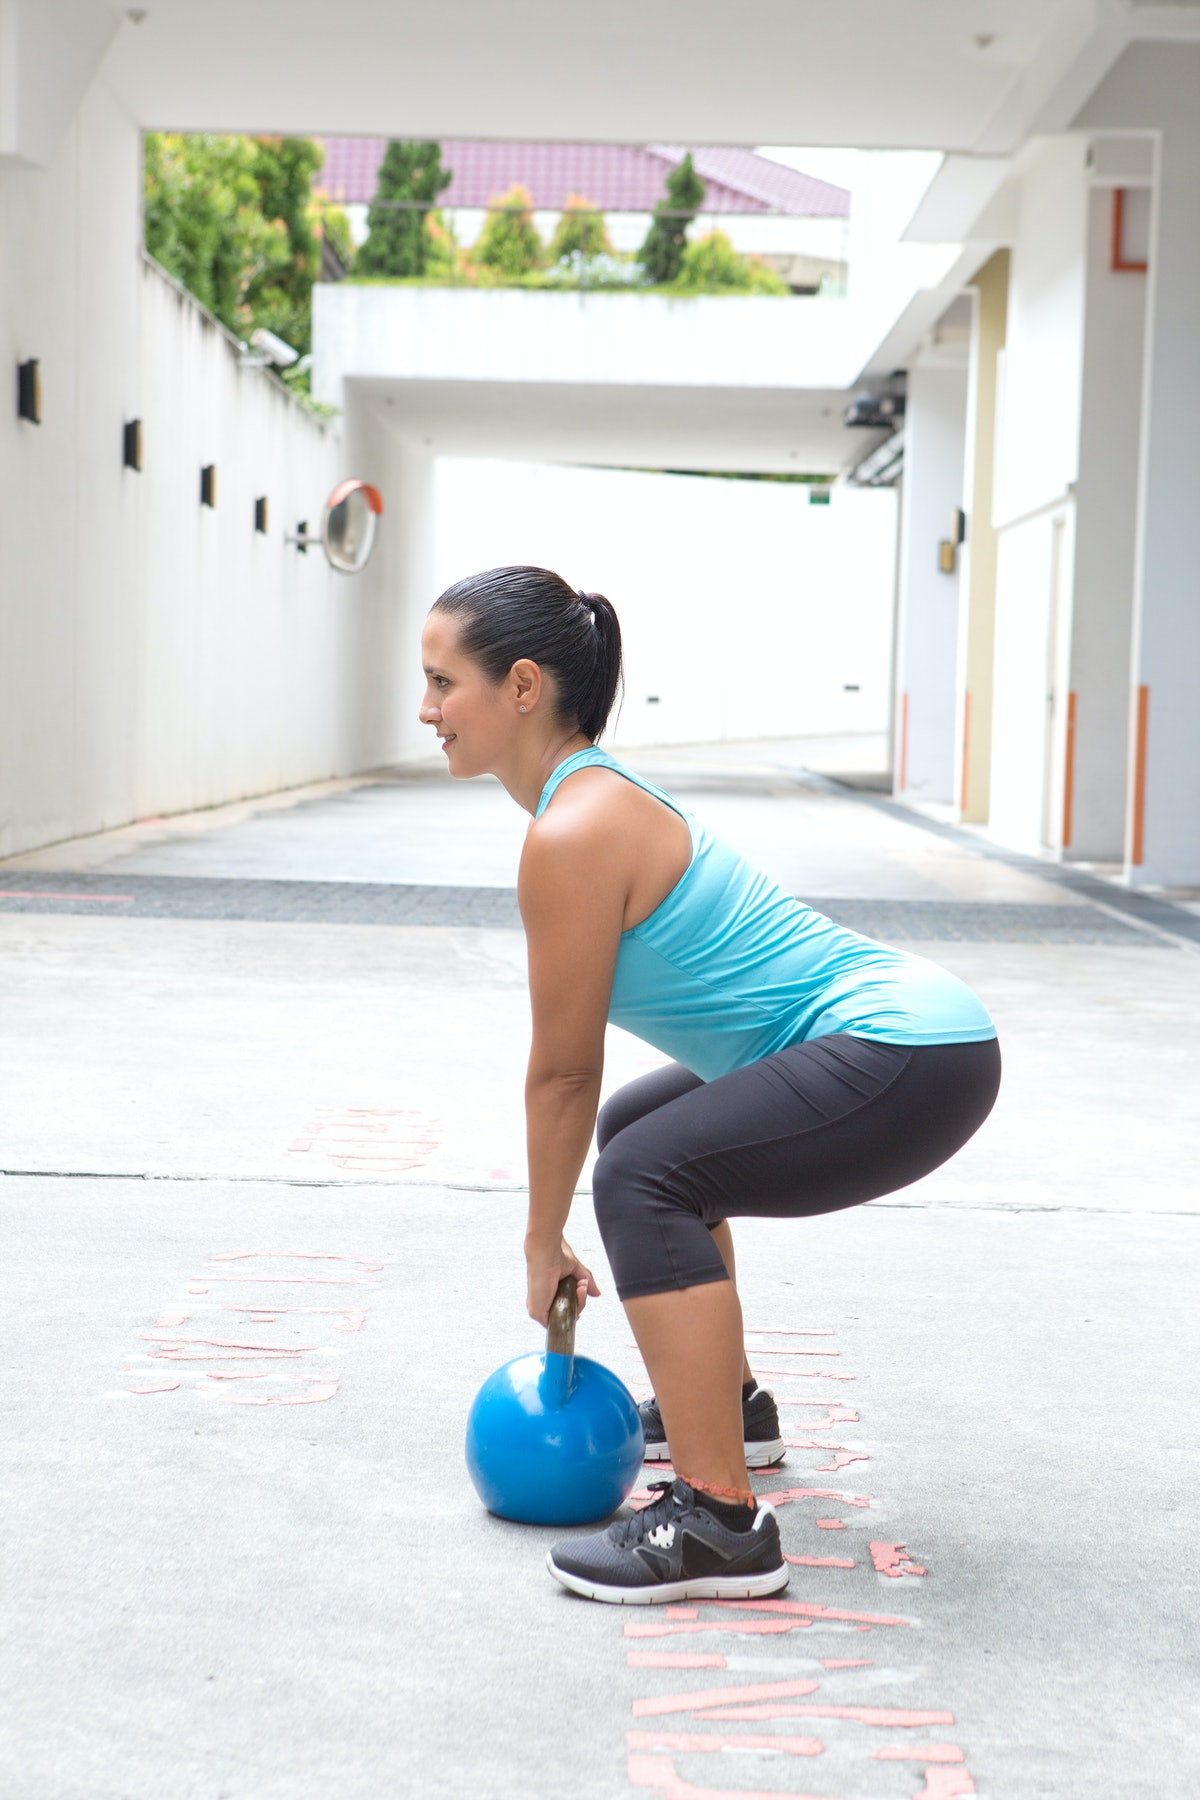 Basic movements like deadlifts are the foundation for functional exercises.